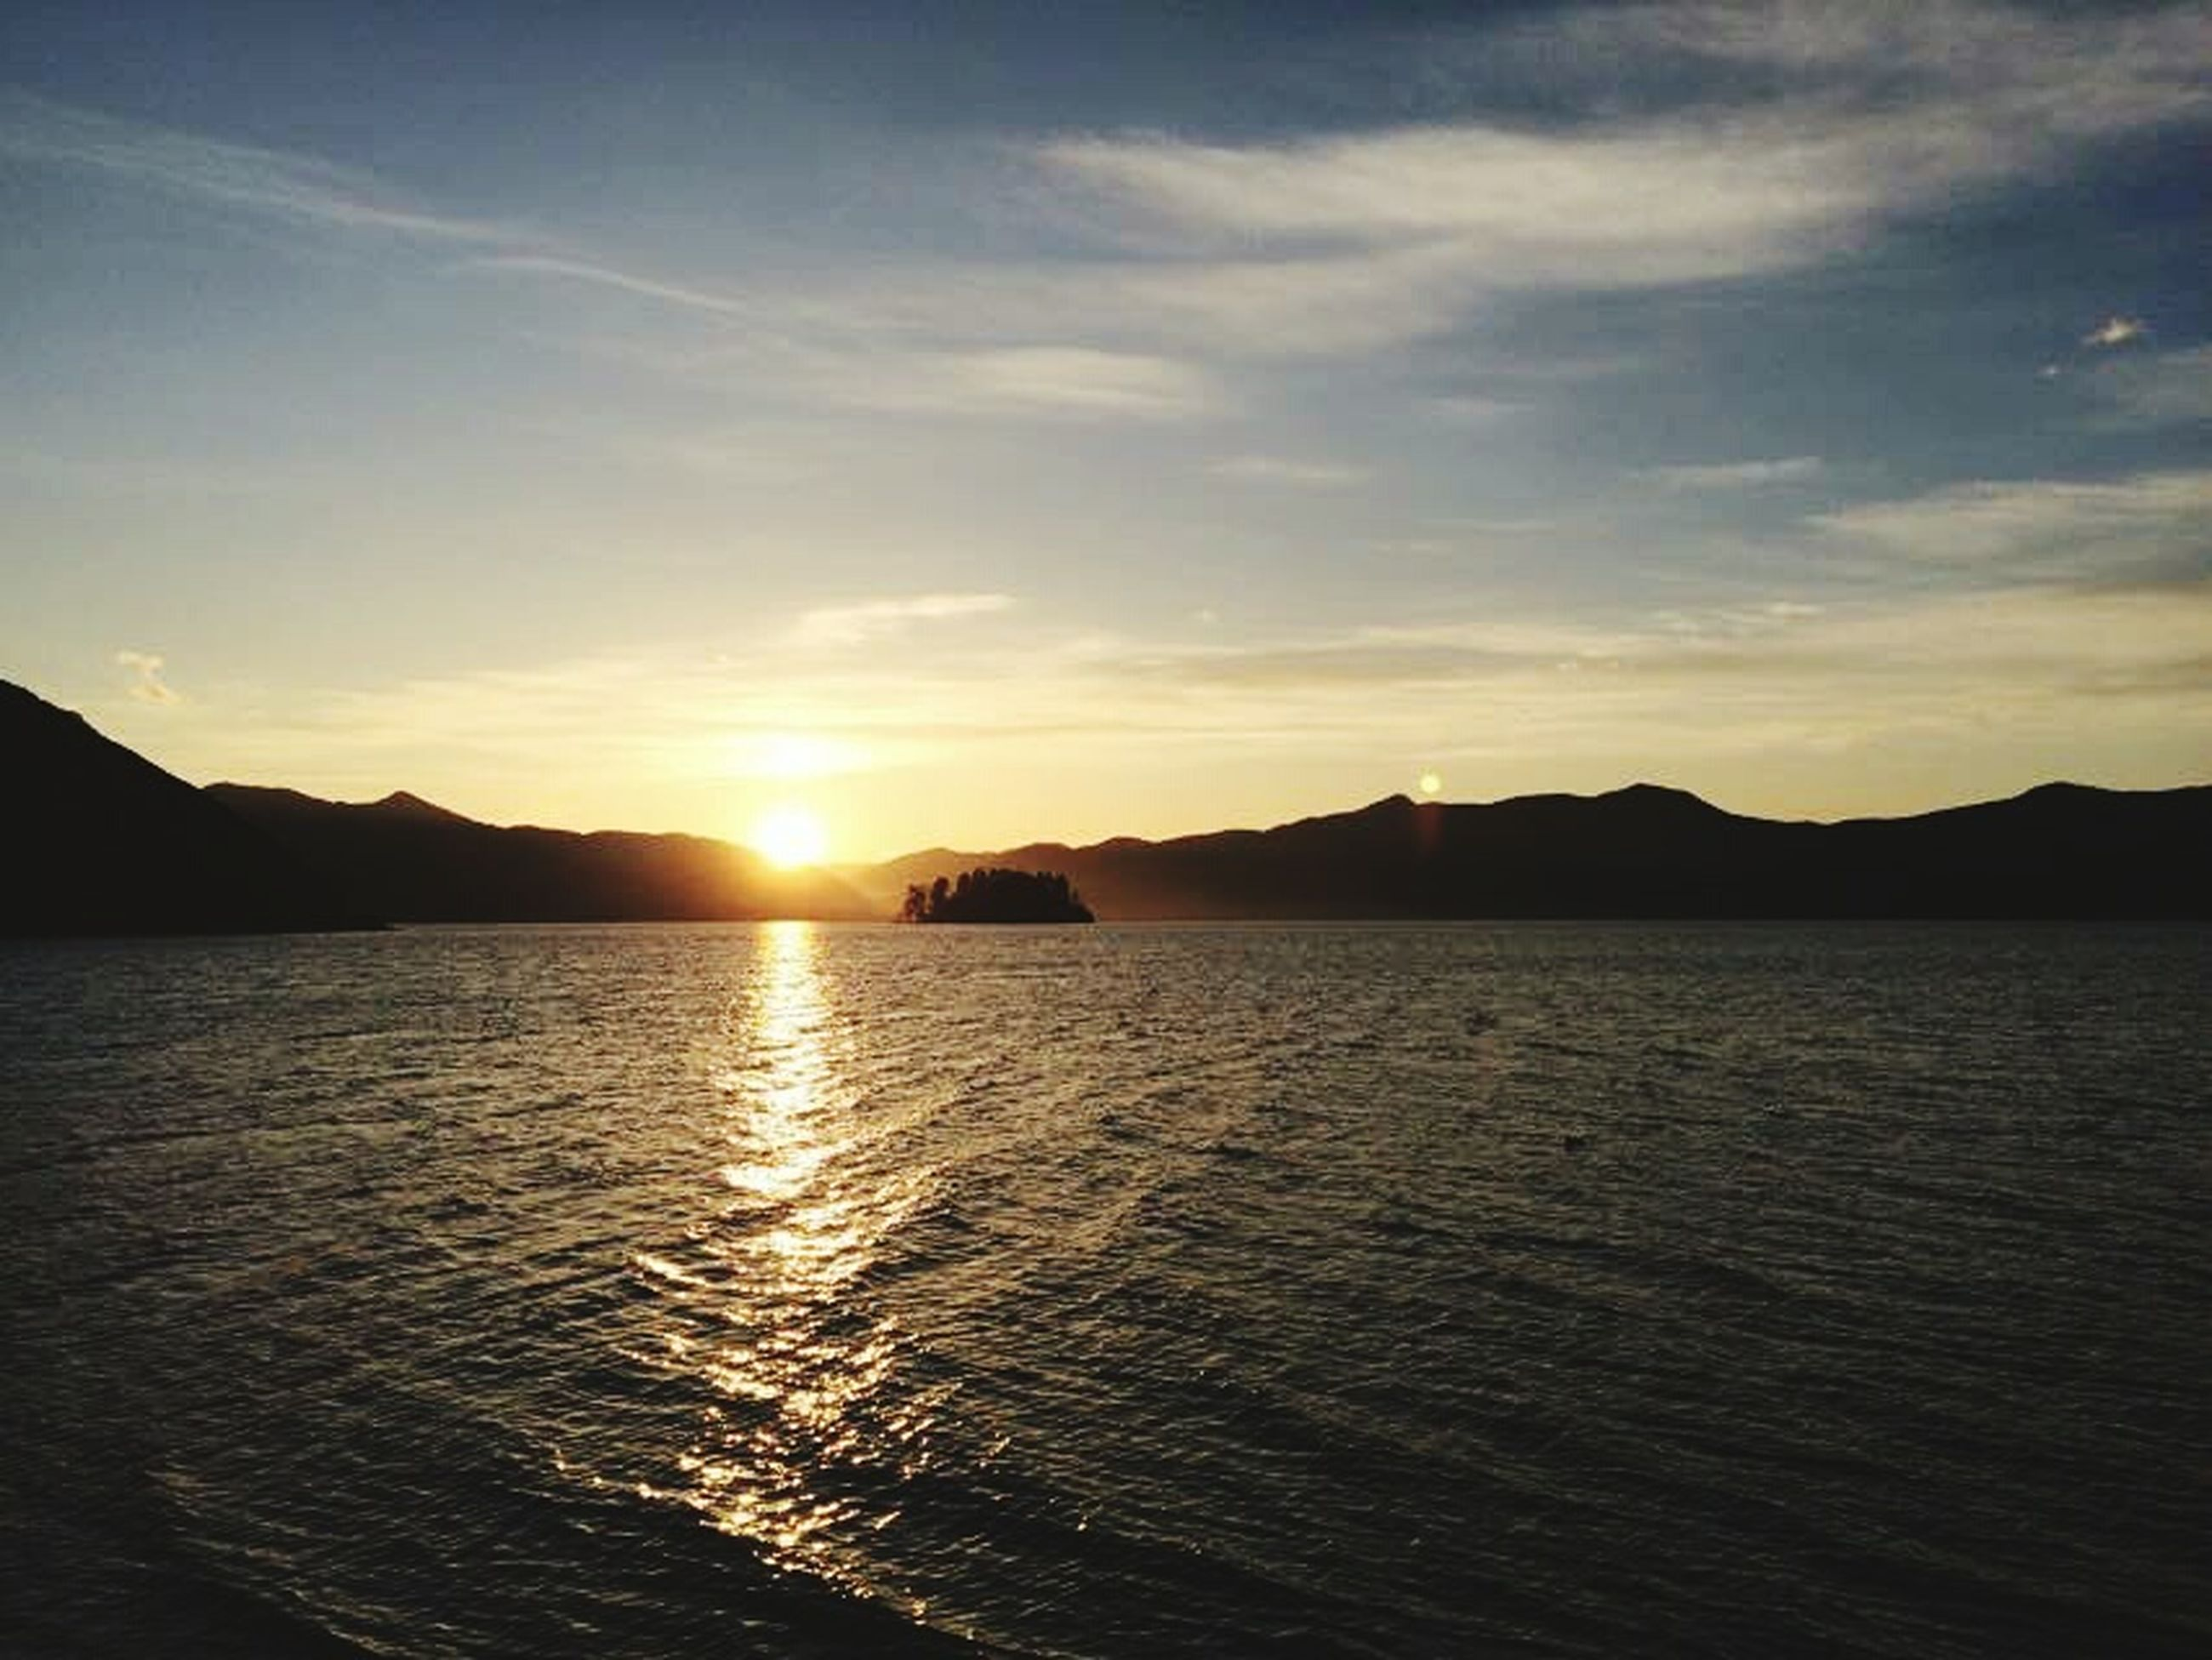 water, mountain, scenics, sunset, tranquil scene, silhouette, tranquility, sun, beauty in nature, sea, reflection, mountain range, idyllic, sky, nature, cloud - sky, non-urban scene, back lit, tourism, majestic, vacations, sunbeam, no people, waterfront, seascape, vibrant color